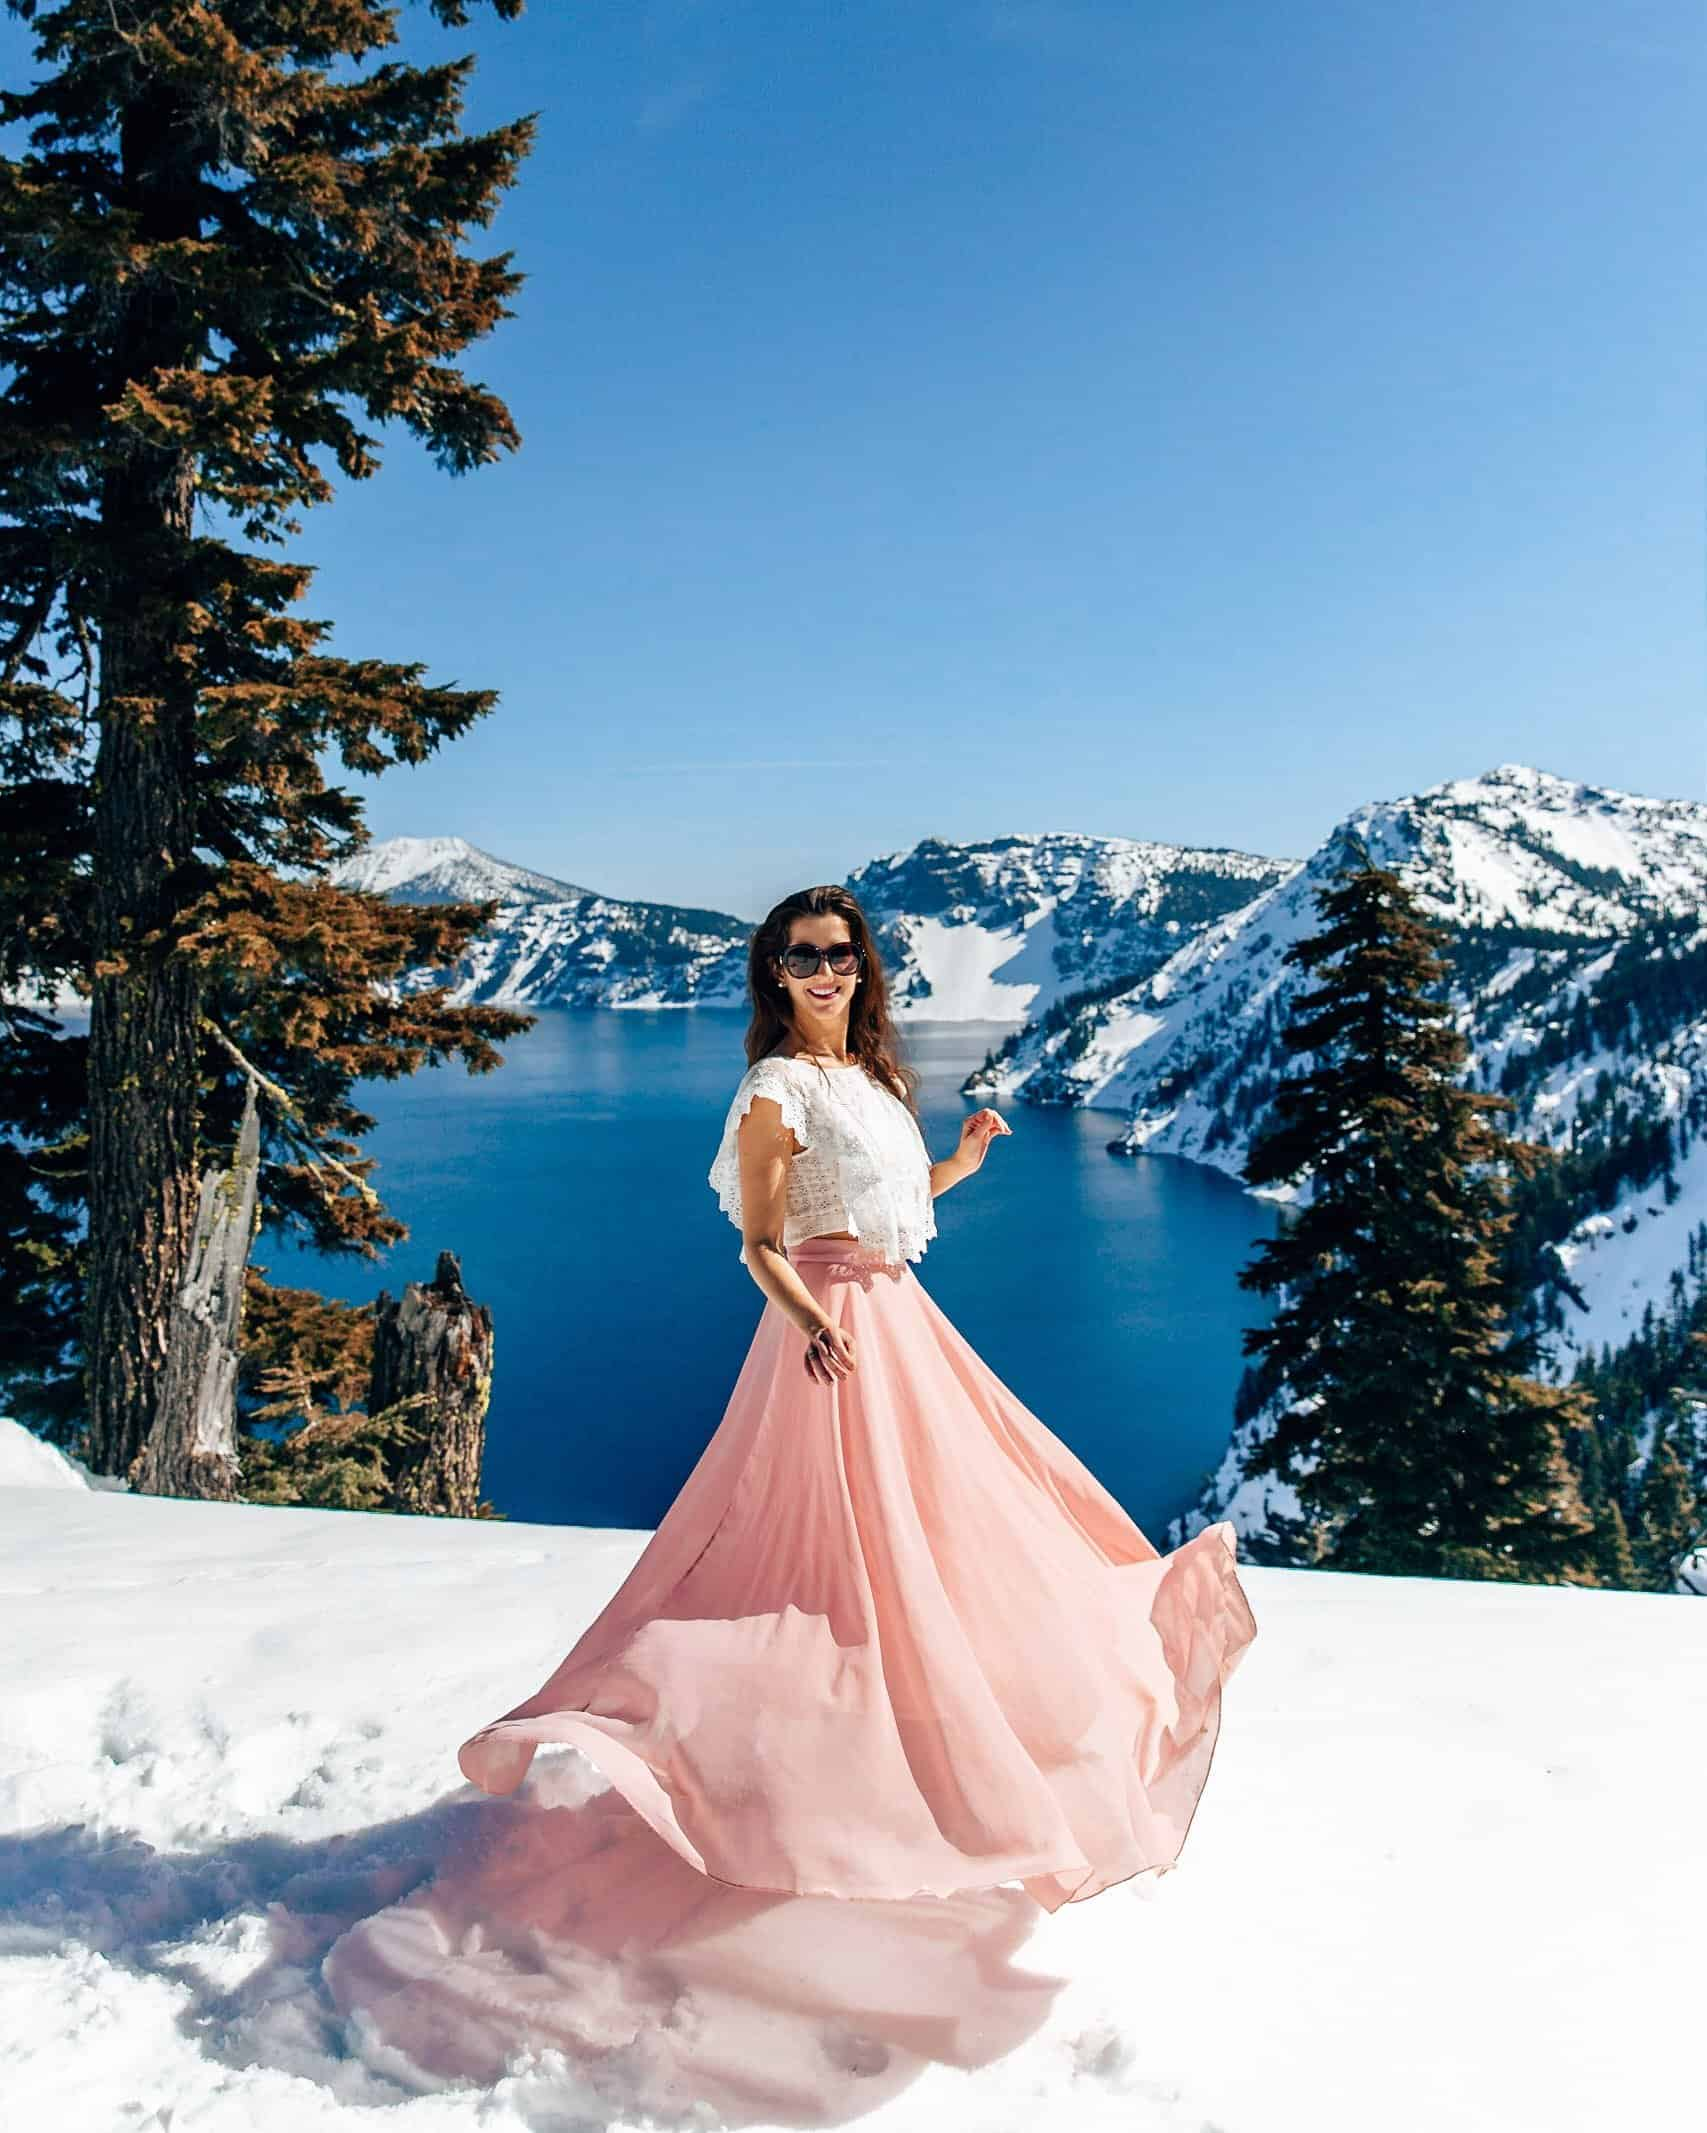 Bettina twirling at Crater Lake in Oregon